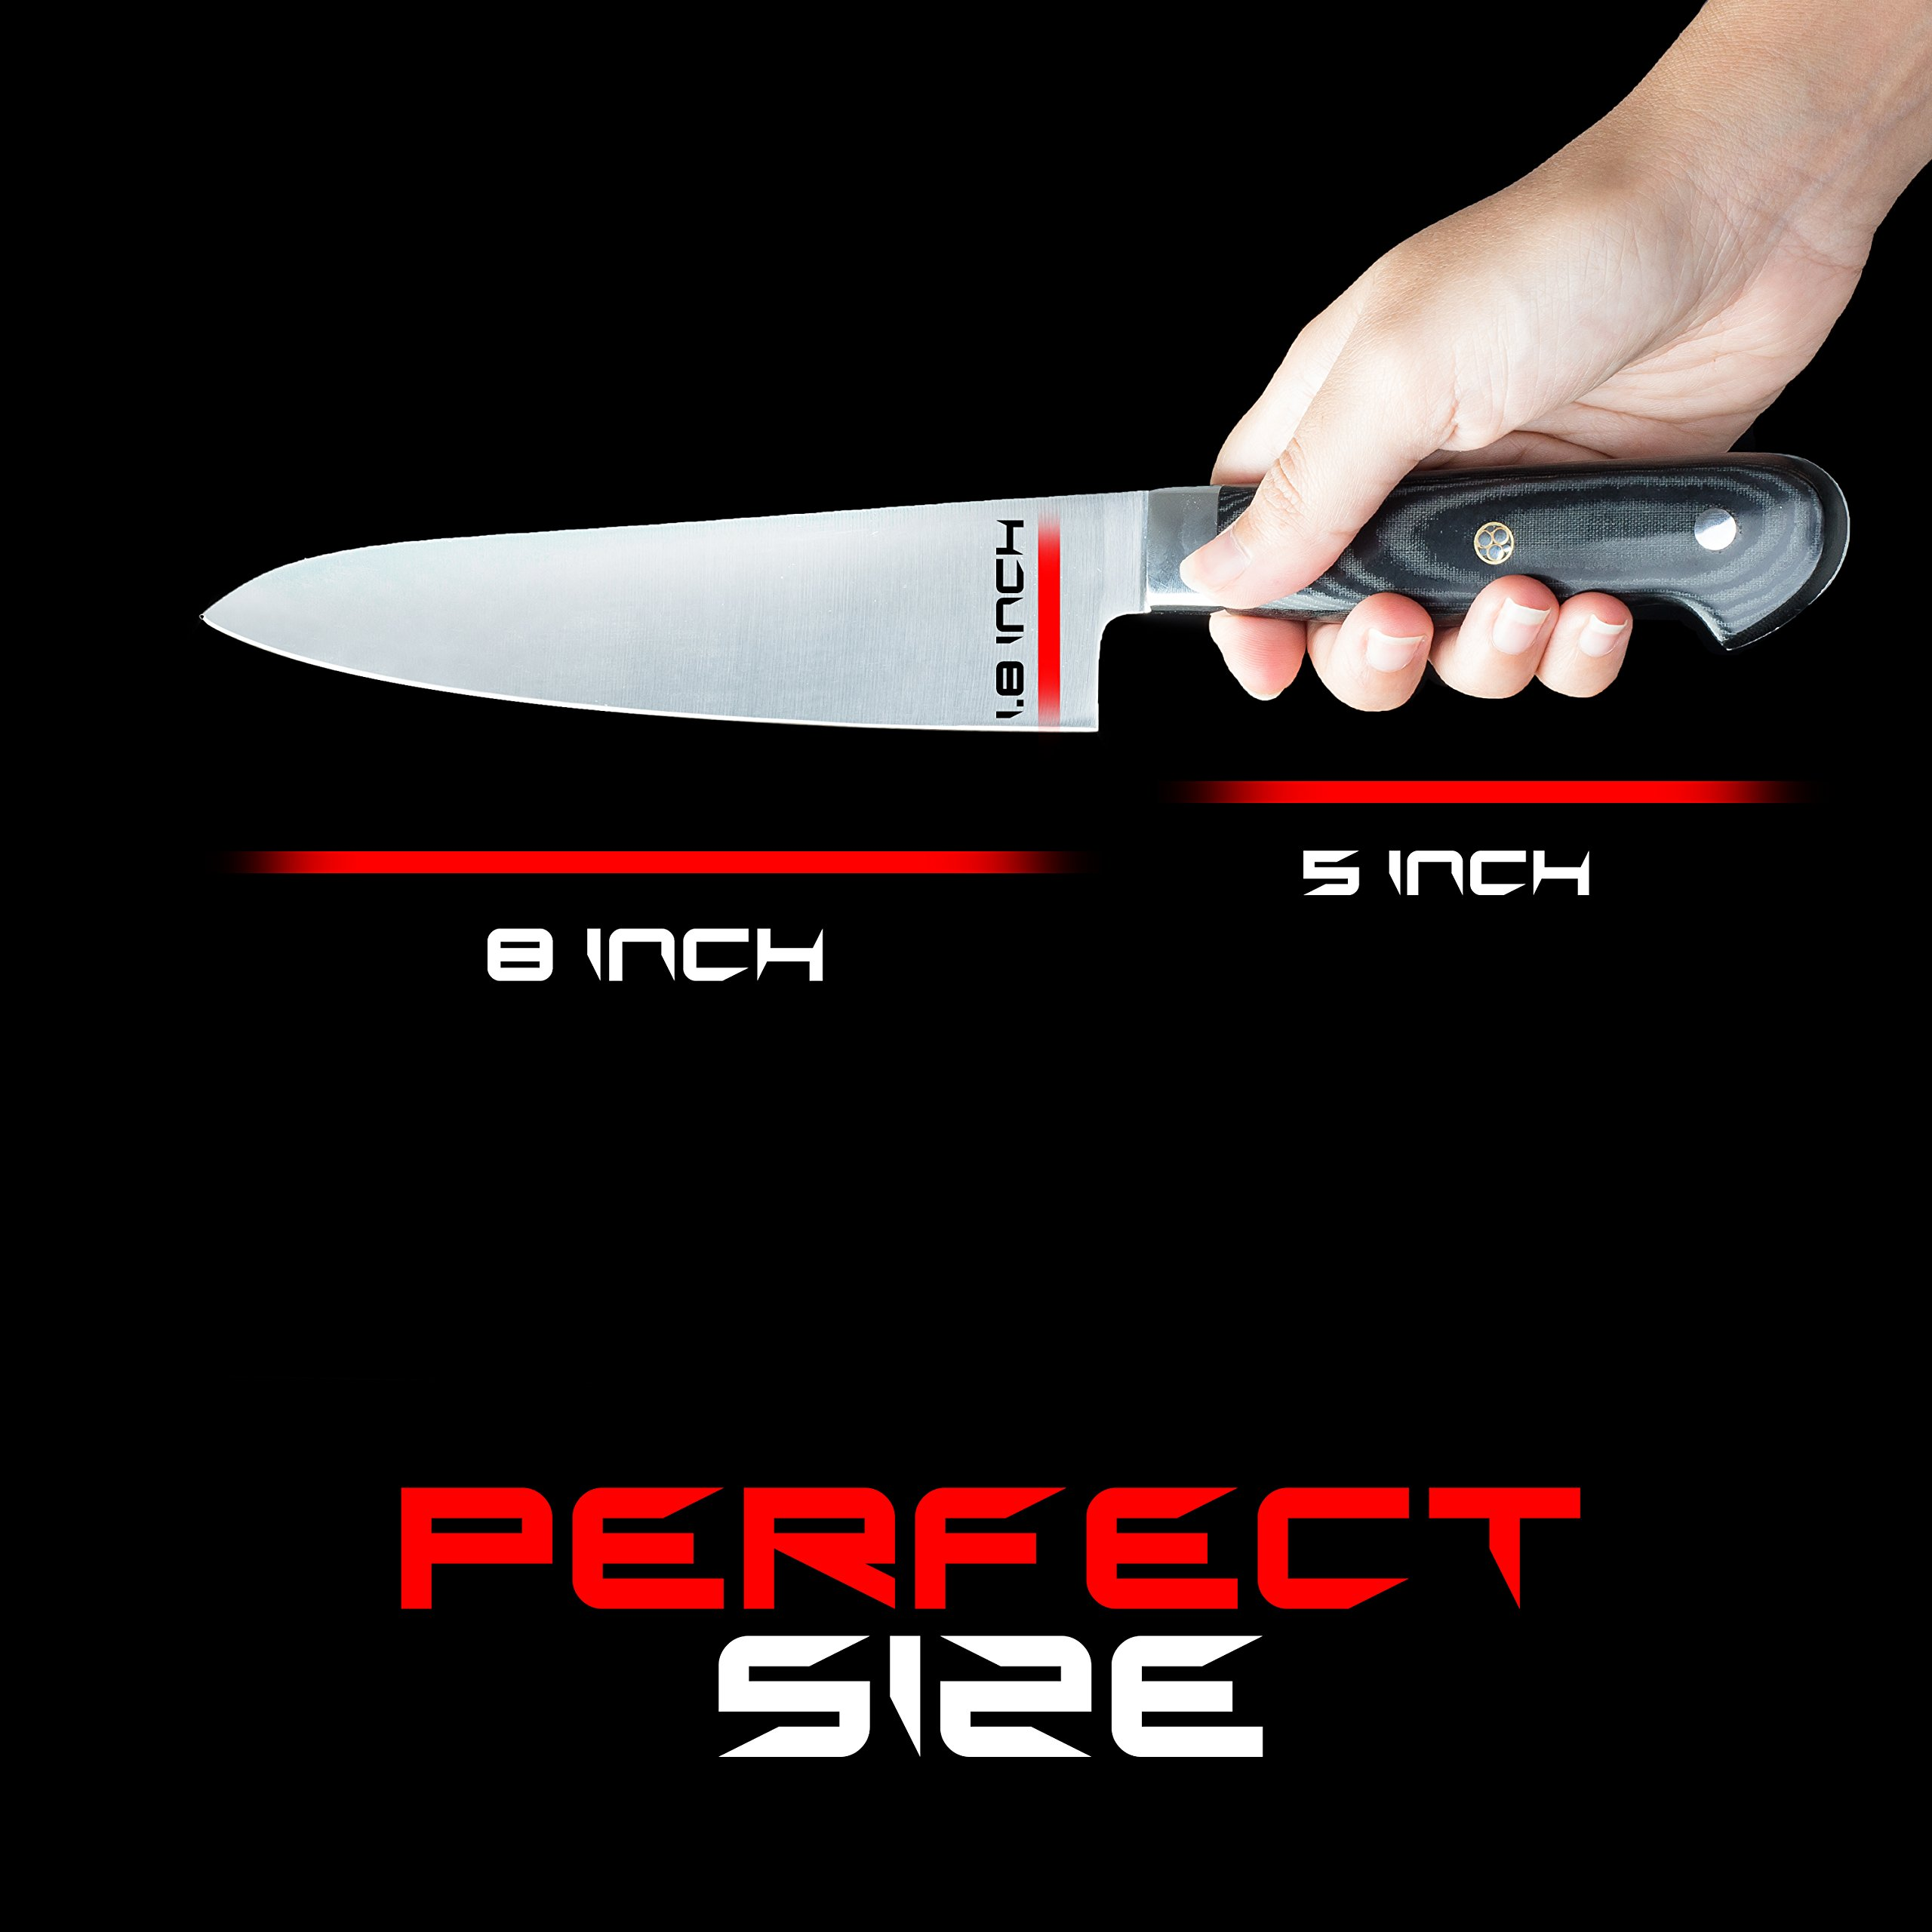 RIGSTYLE German Chef Knife 8 inch, High Carbon Stainless Steel, Sharp Blade with Ergonomic Handle for Professional Restaurants & Home Kitchens, Meat, Fish, Chicken & Vegetables Chopper, with Gift Box by RIGSTYLE (Image #2)